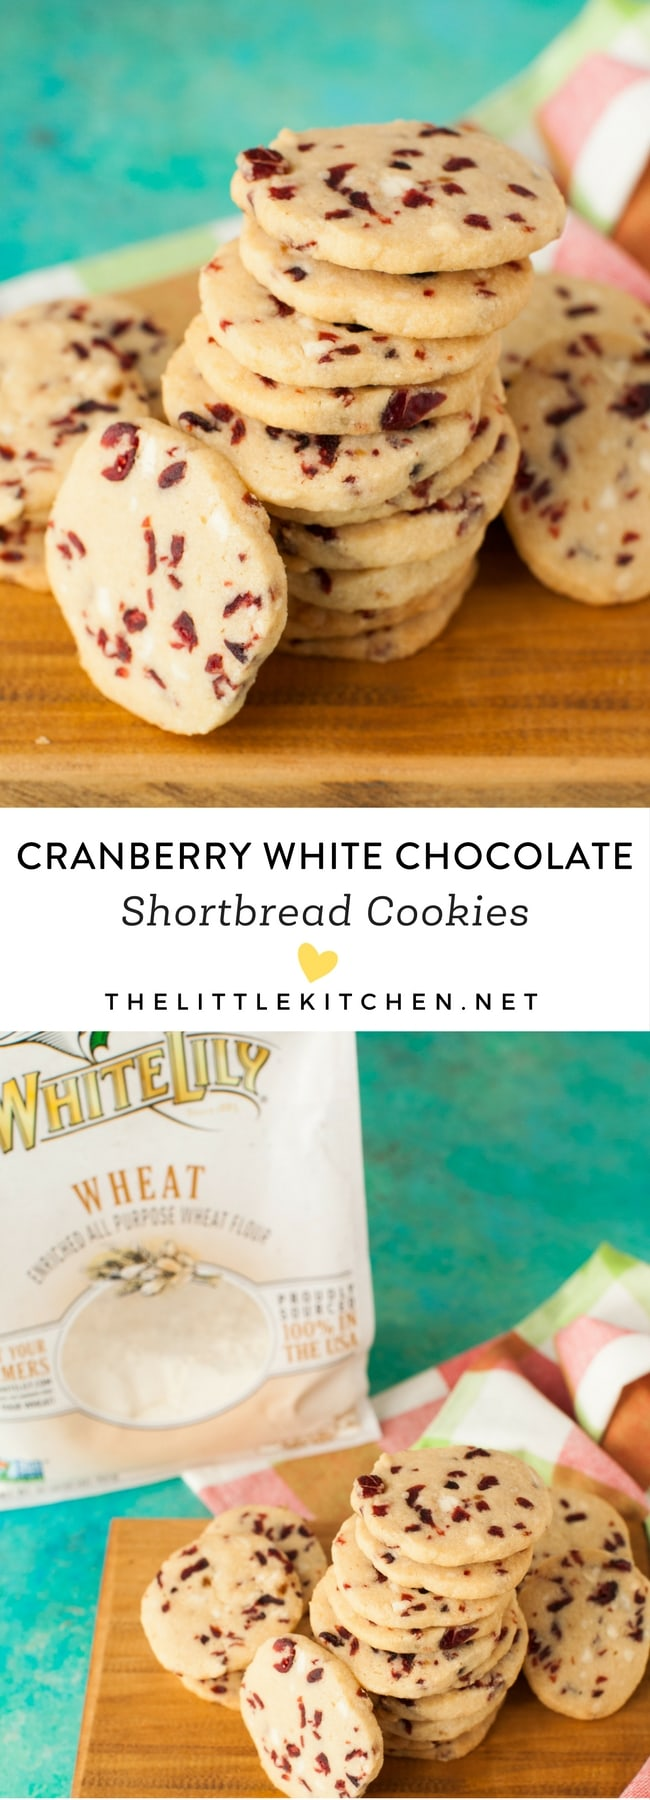 Cranberry White Chocolate Shortbread Cookies from thelittlekitchen.net